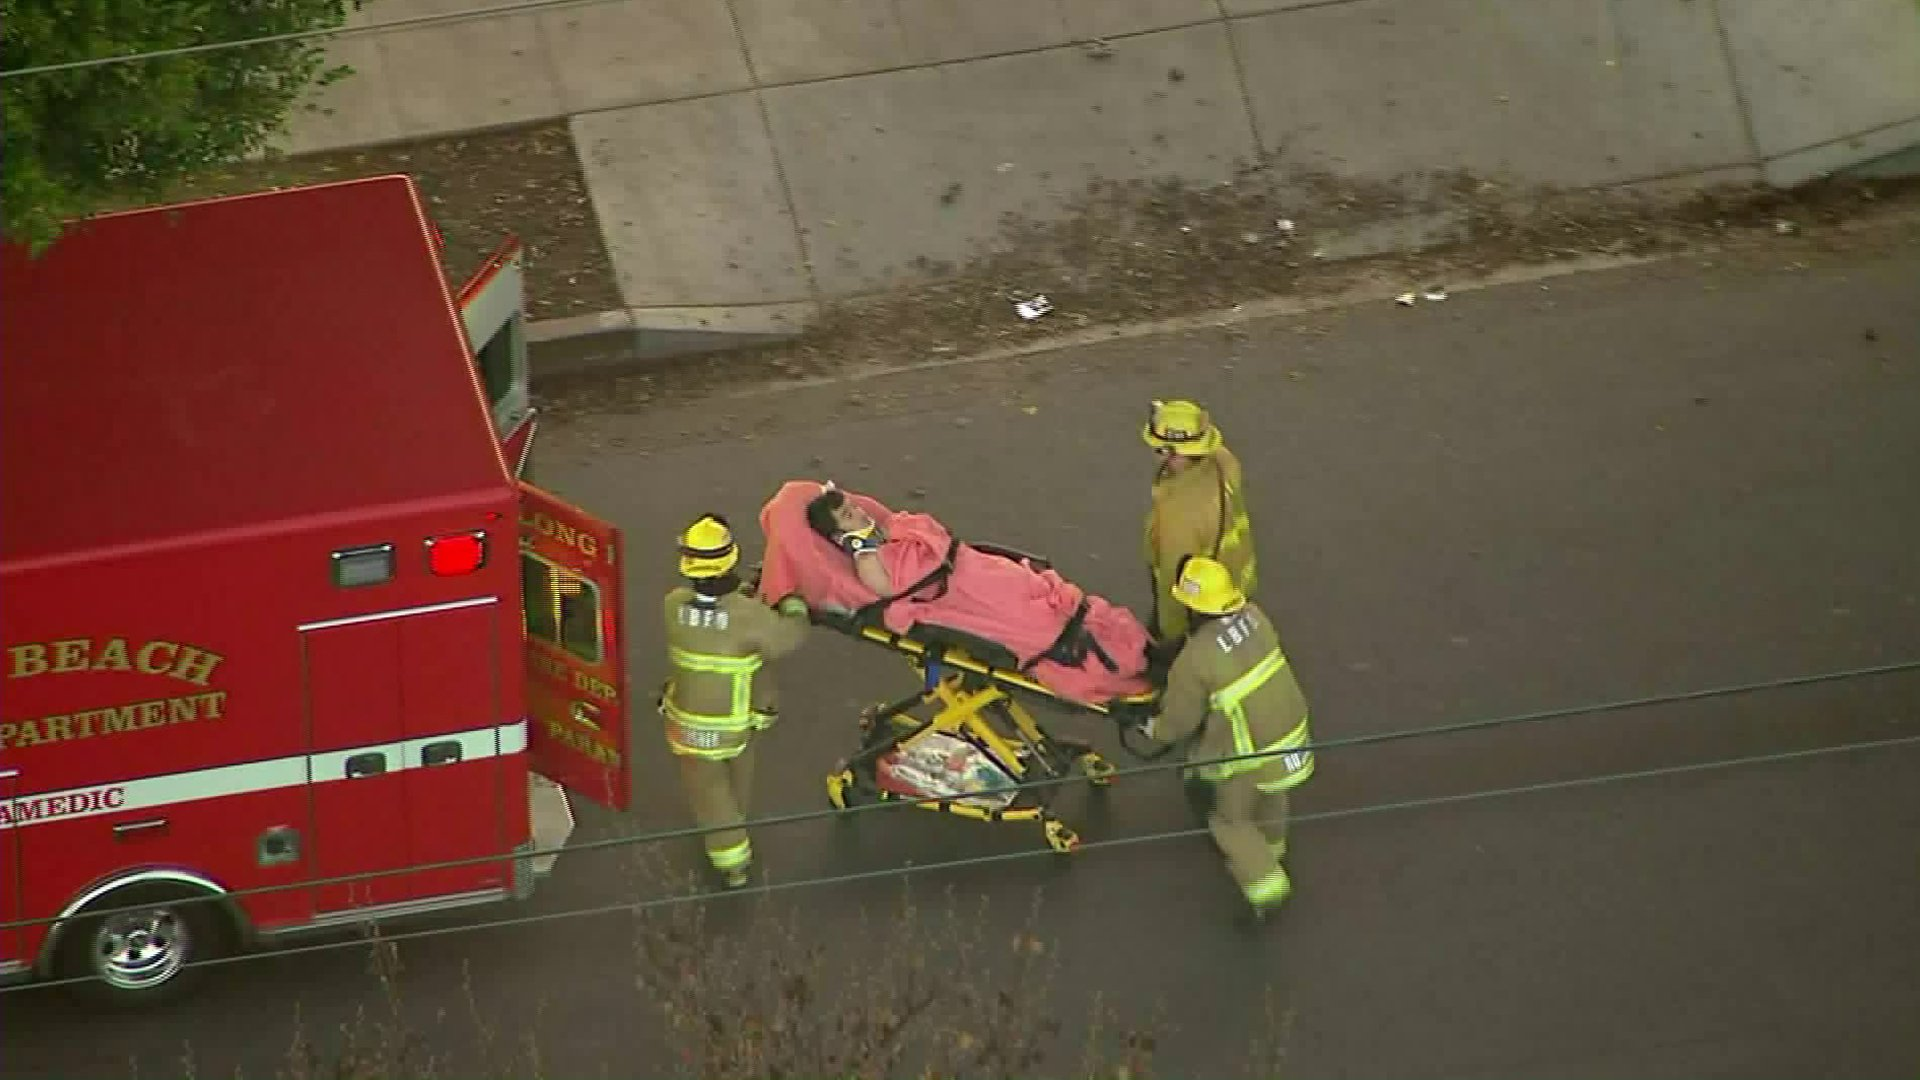 Sky5 footage shows a child being transported into an ambulance after being hit by a vehicle in Long Beach on Jan. 14, 2019.